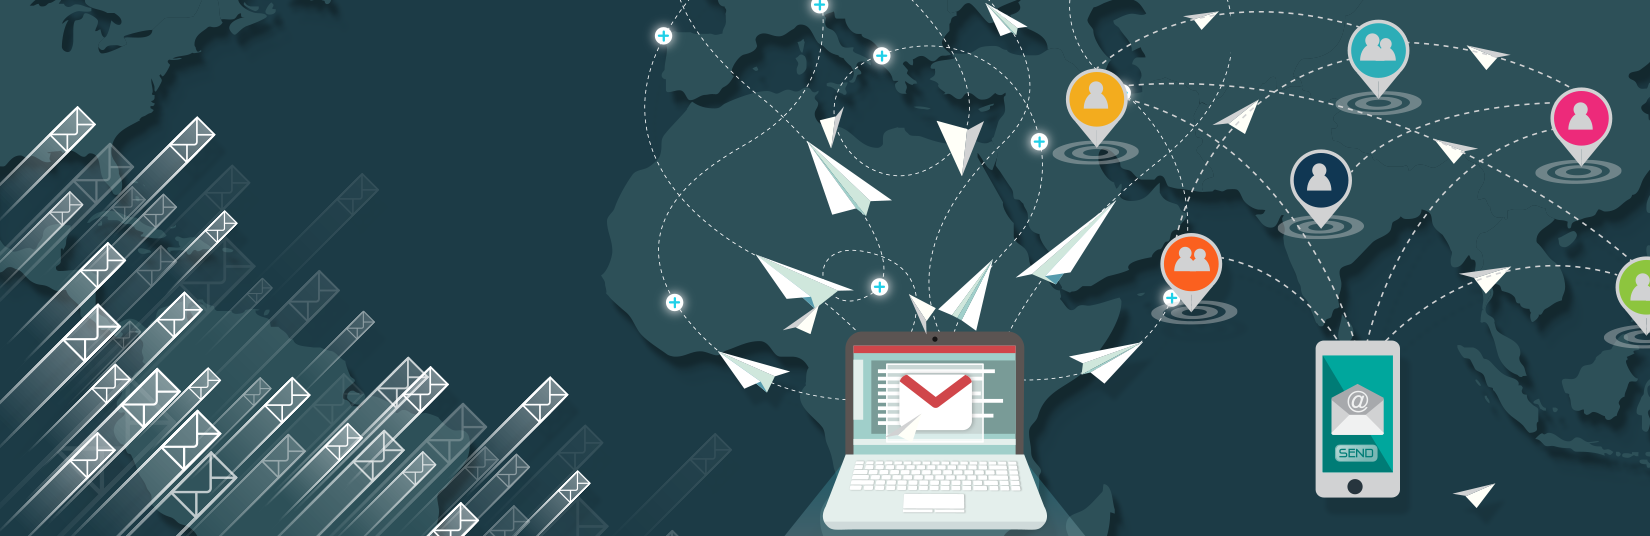 Email Marketing Services, Email Marketing for e-commerce, Email Marketing